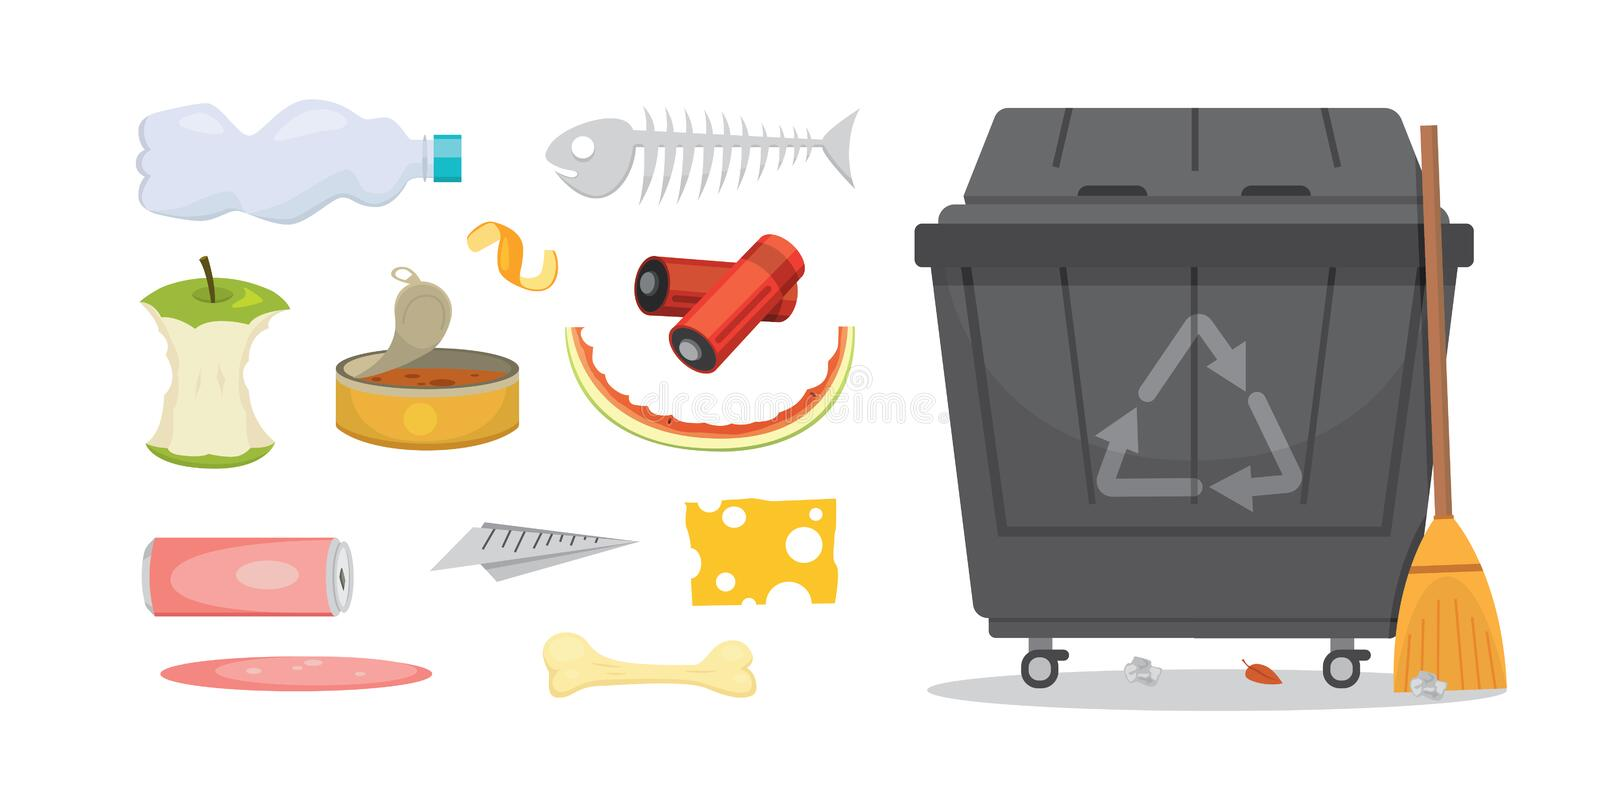 Trash and garbage set illustrations in cartoon style. Biodegradable, plastic and dumpster icons. Trash and garbage set illustrations in cartoon style royalty free illustration